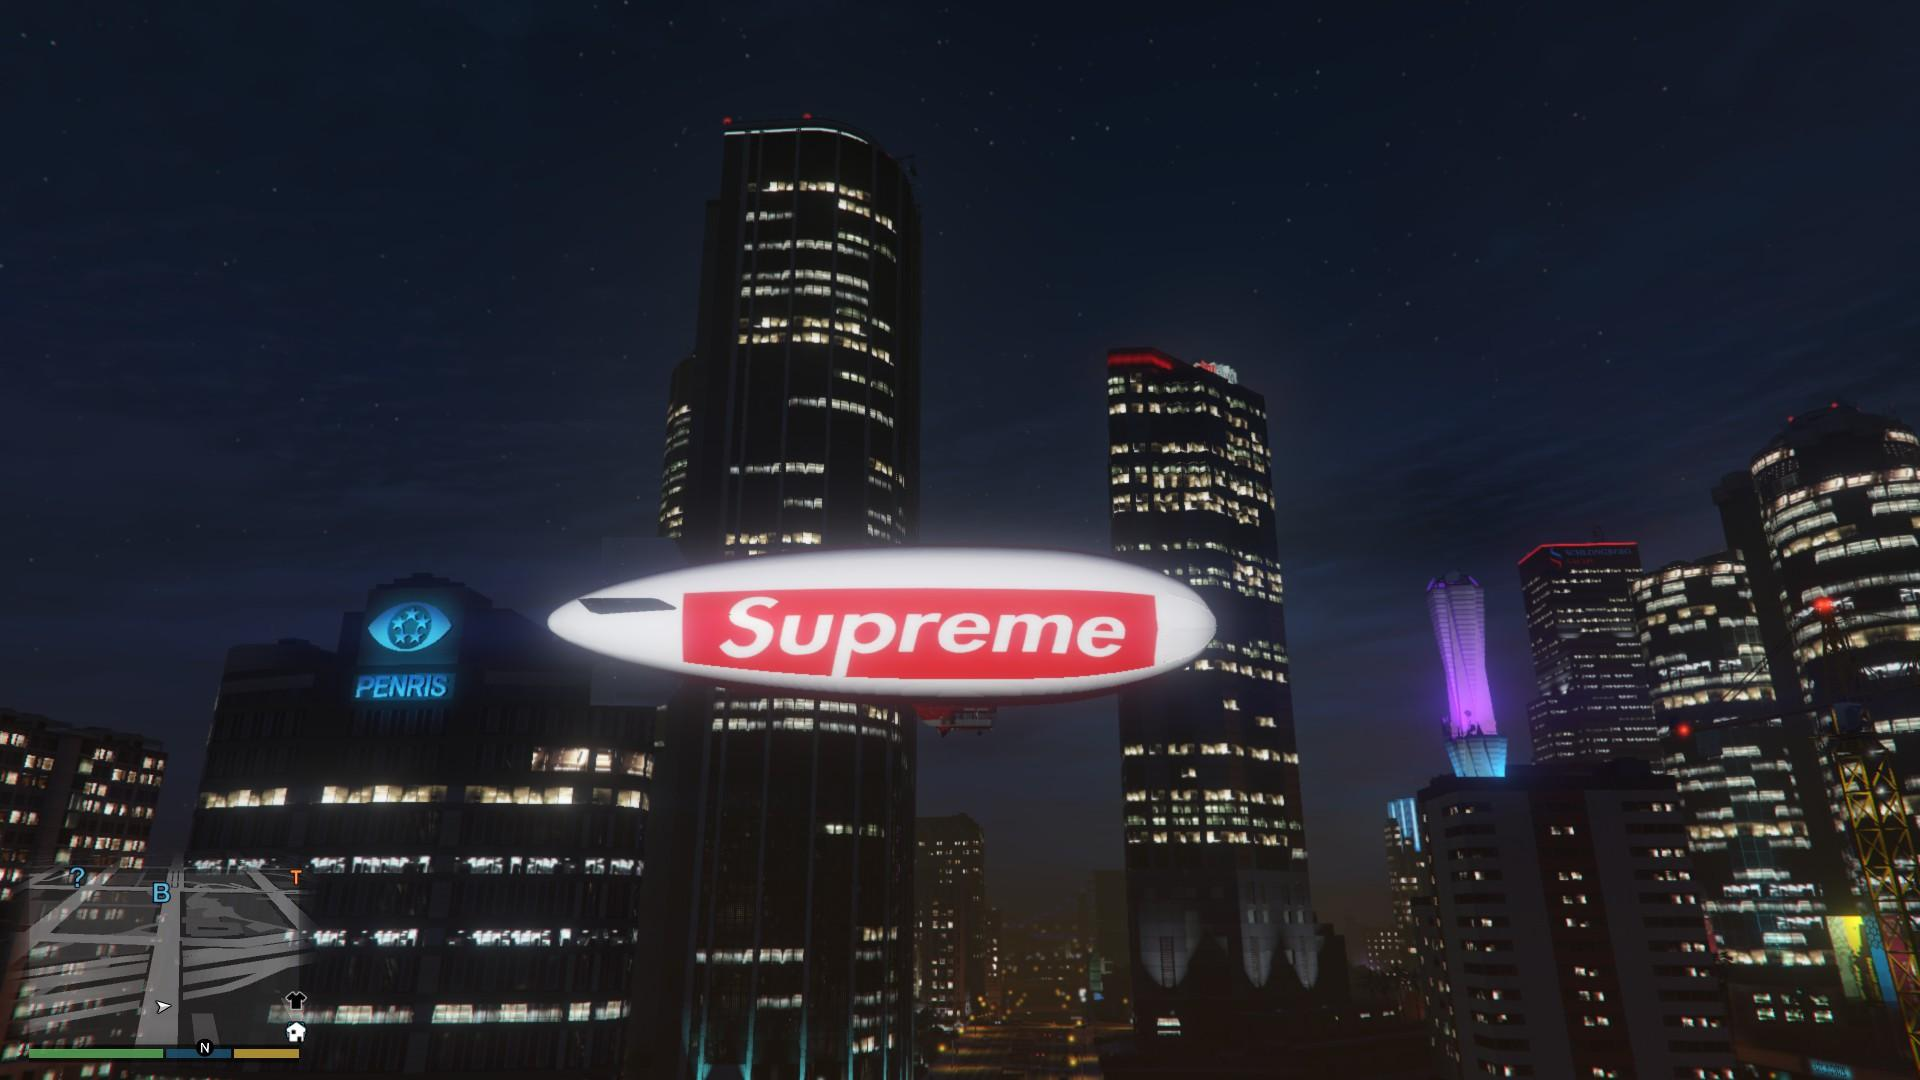 Skate 2 Lanza Trailer Por Su Debut moreover The Wall Wallpaper likewise Supreme Blimp Hd Atomic Blimp Reskin furthermore Living The Van Life besides Sierra Denali Pickup Truck. on vans wallpaper